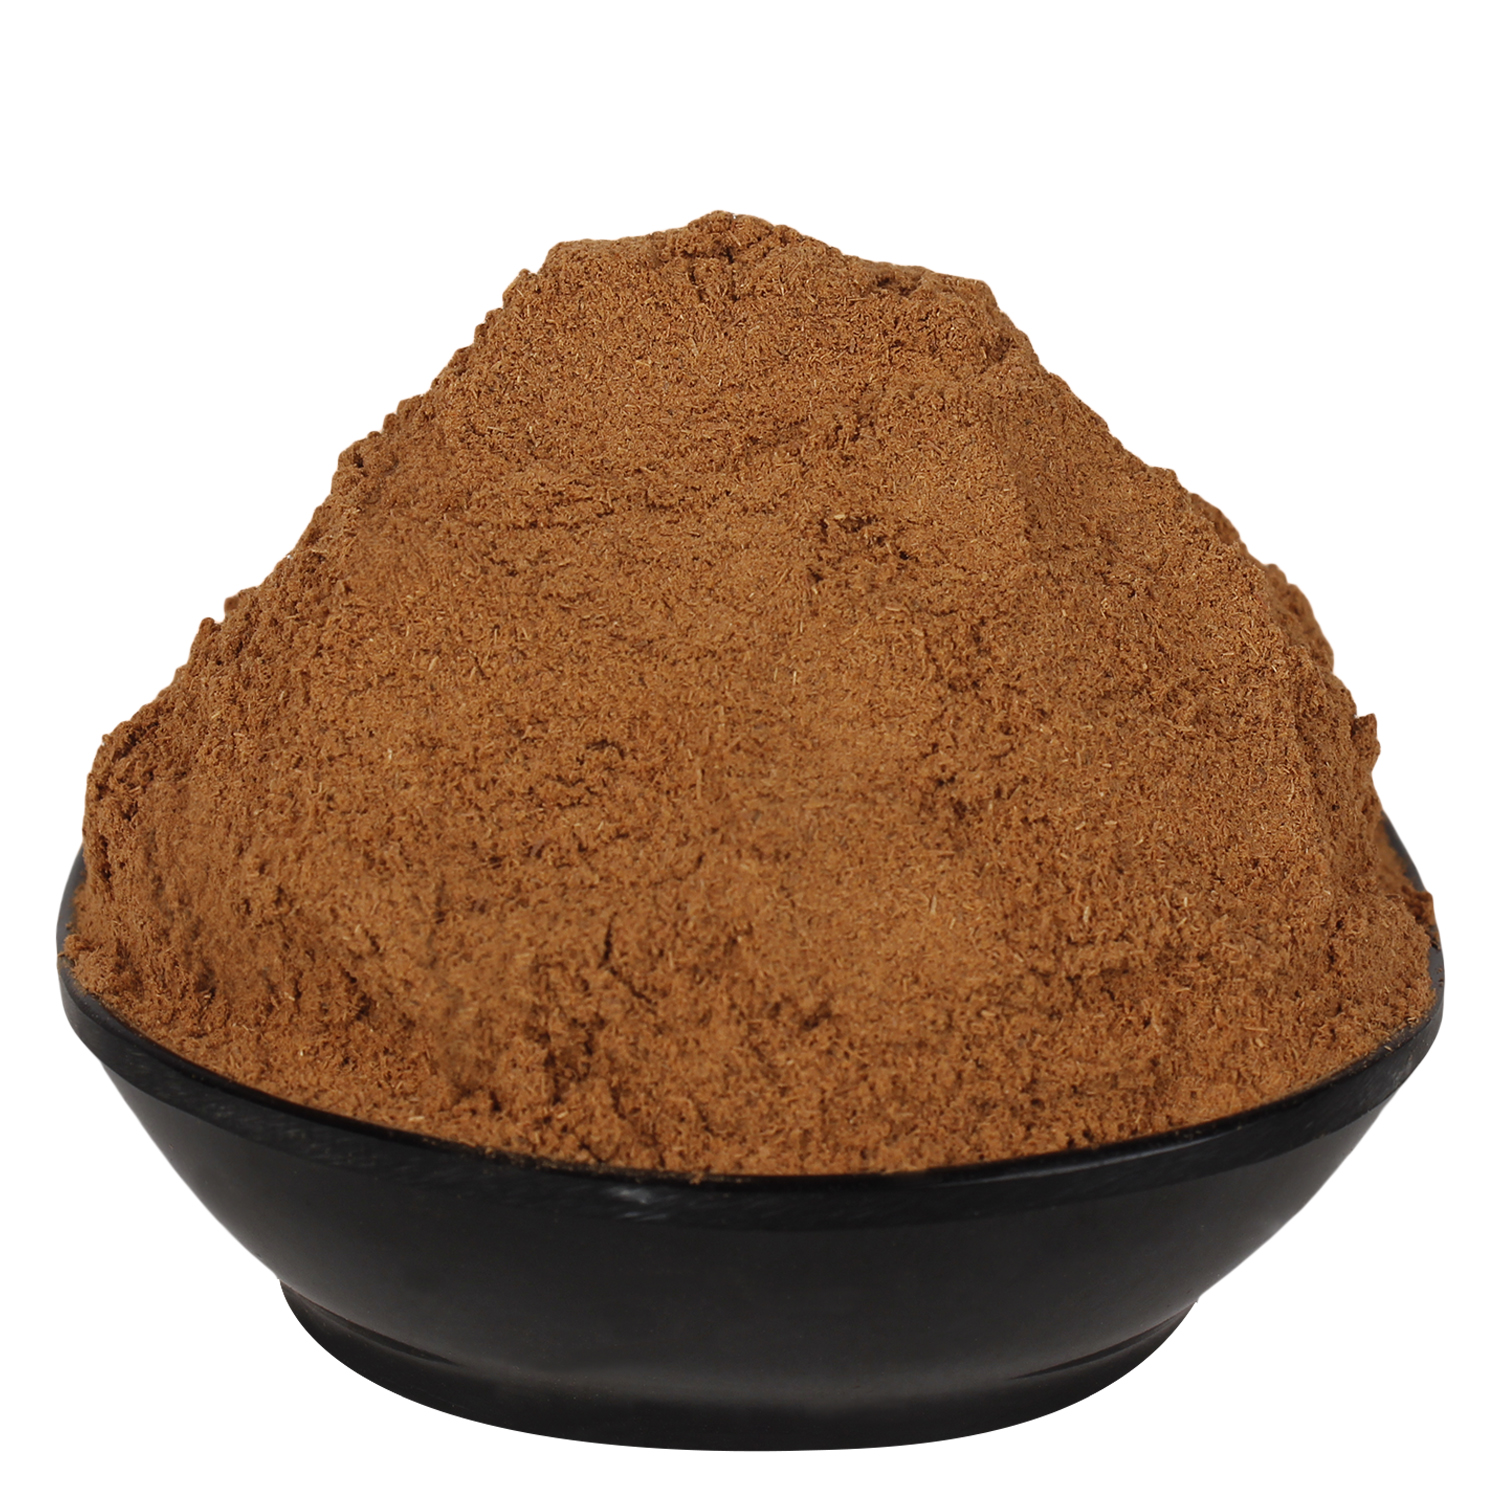 YUVIKA Vijaysar Powder - Pterocarpus Marsupium - Indian Kino Powder